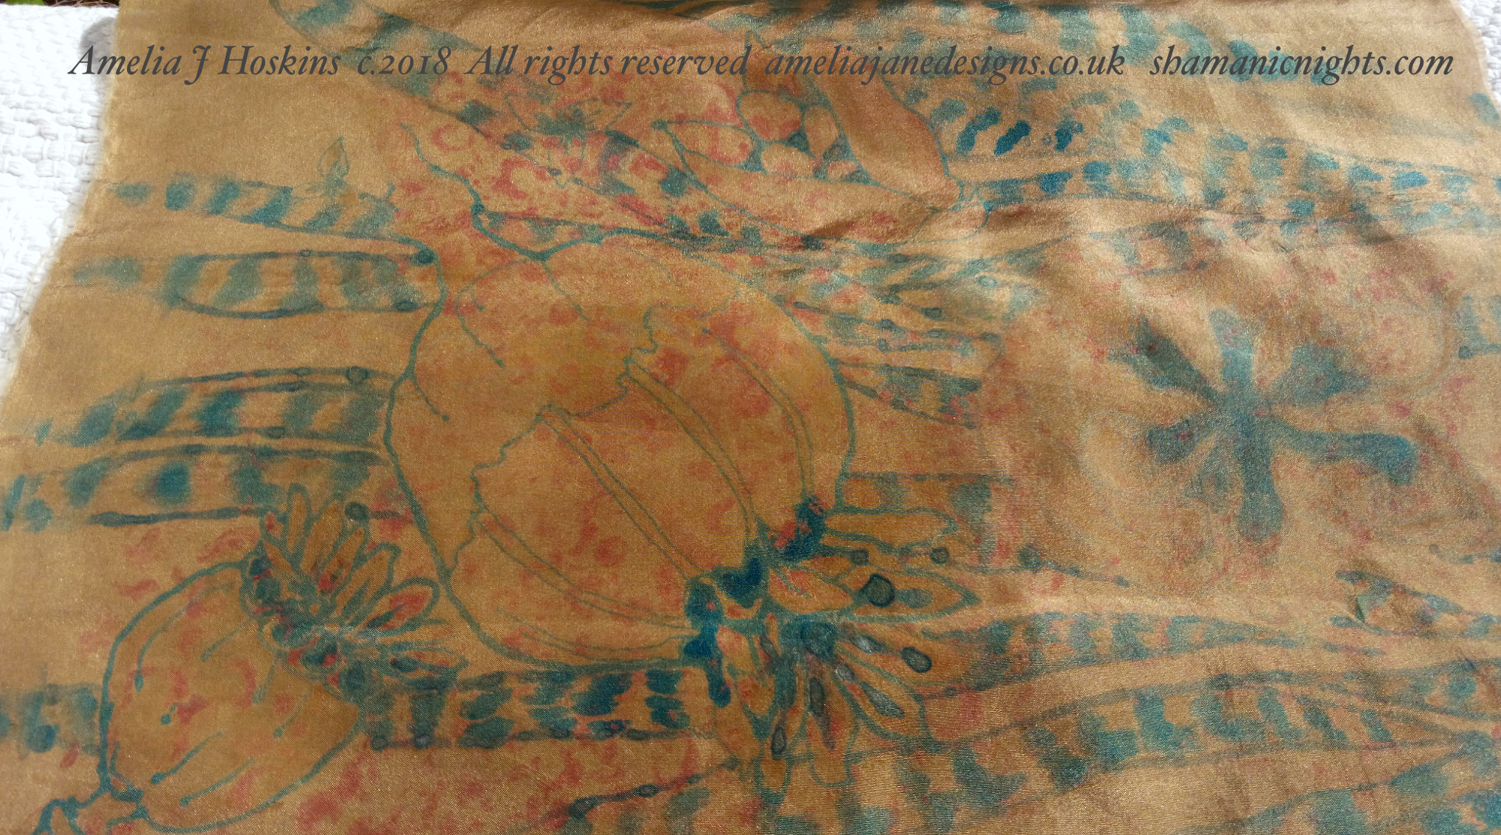 Eucalyptus dyed silk painting poppy seed close stage one 2018-10-20 13.25.14 - 002 edited annotated